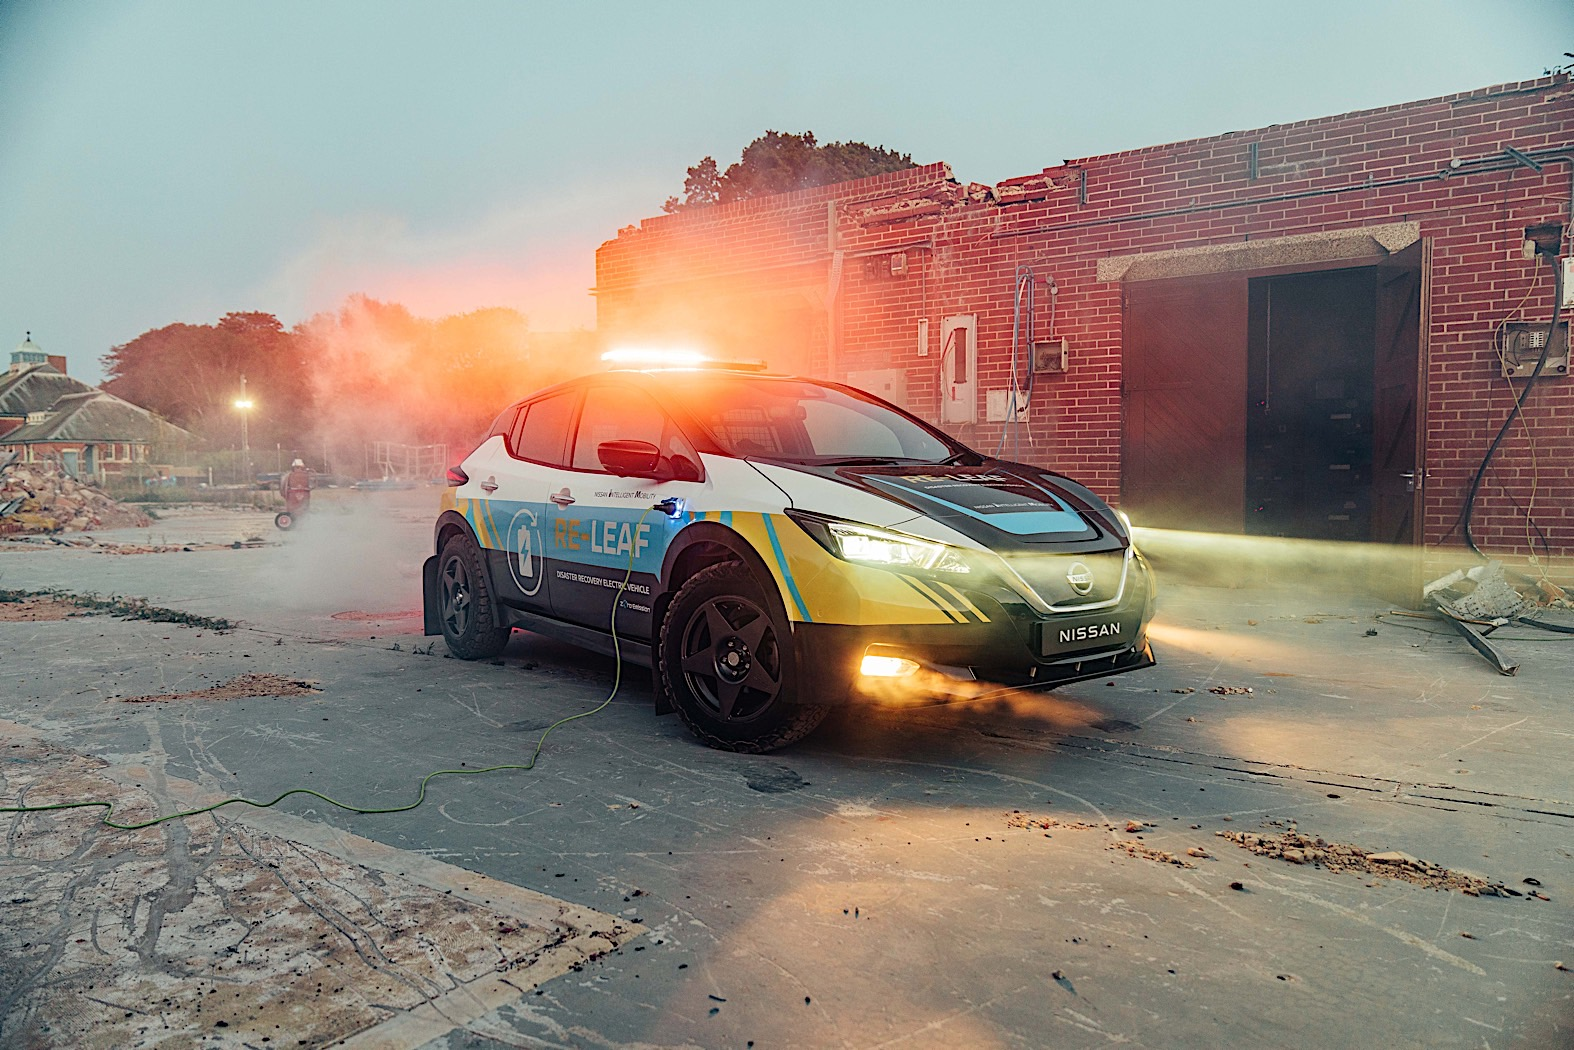 Nissan's Re-Leaf prototype is a mobile power supply for disaster response